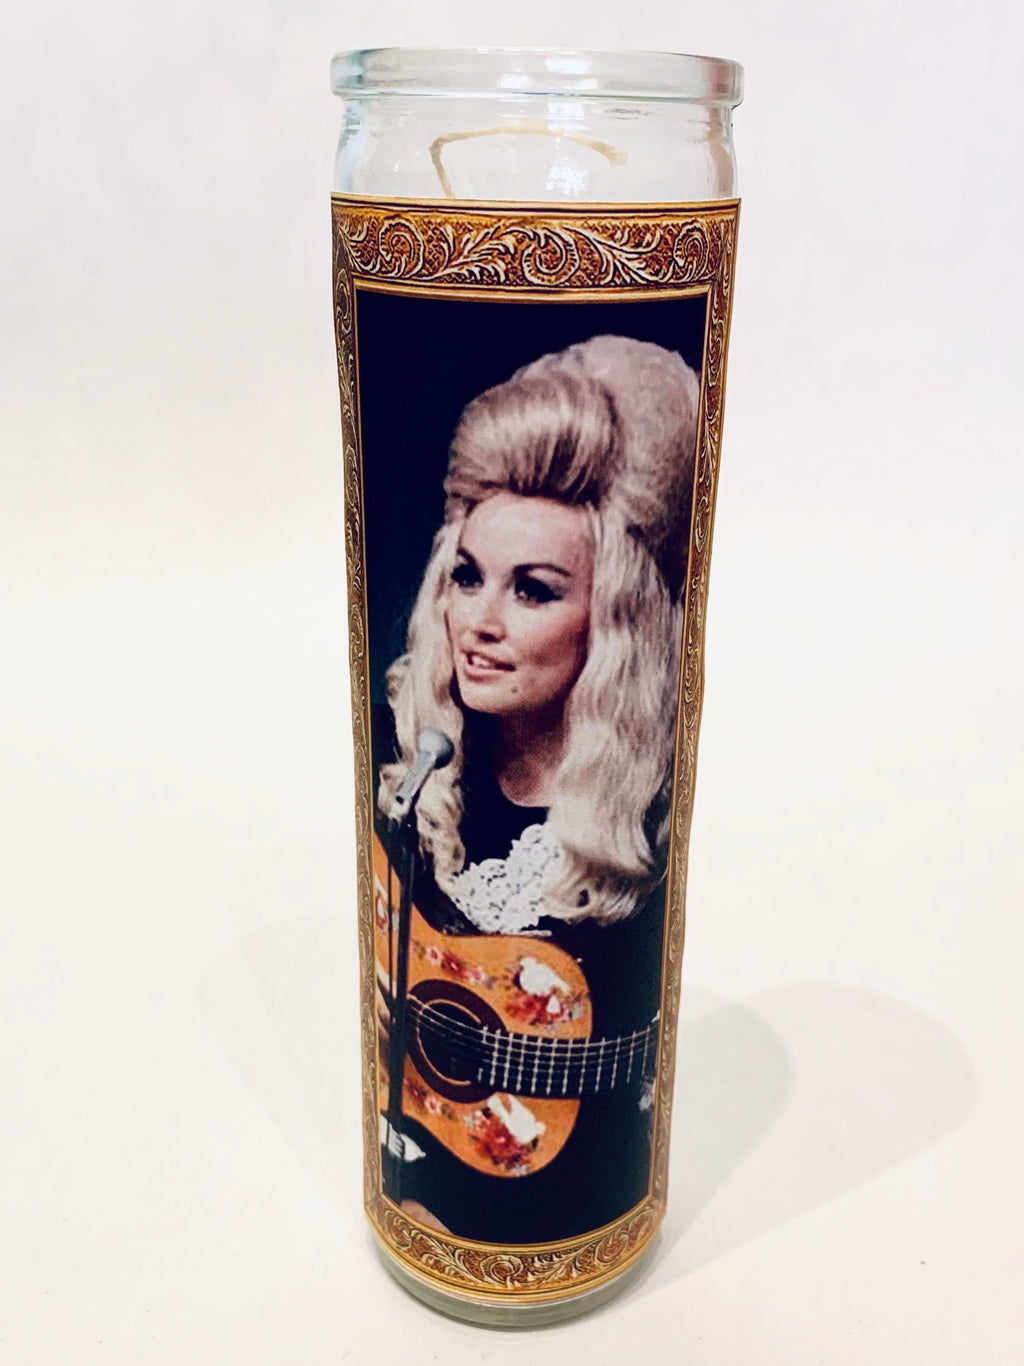 Celebrity Candle Dolly Parton